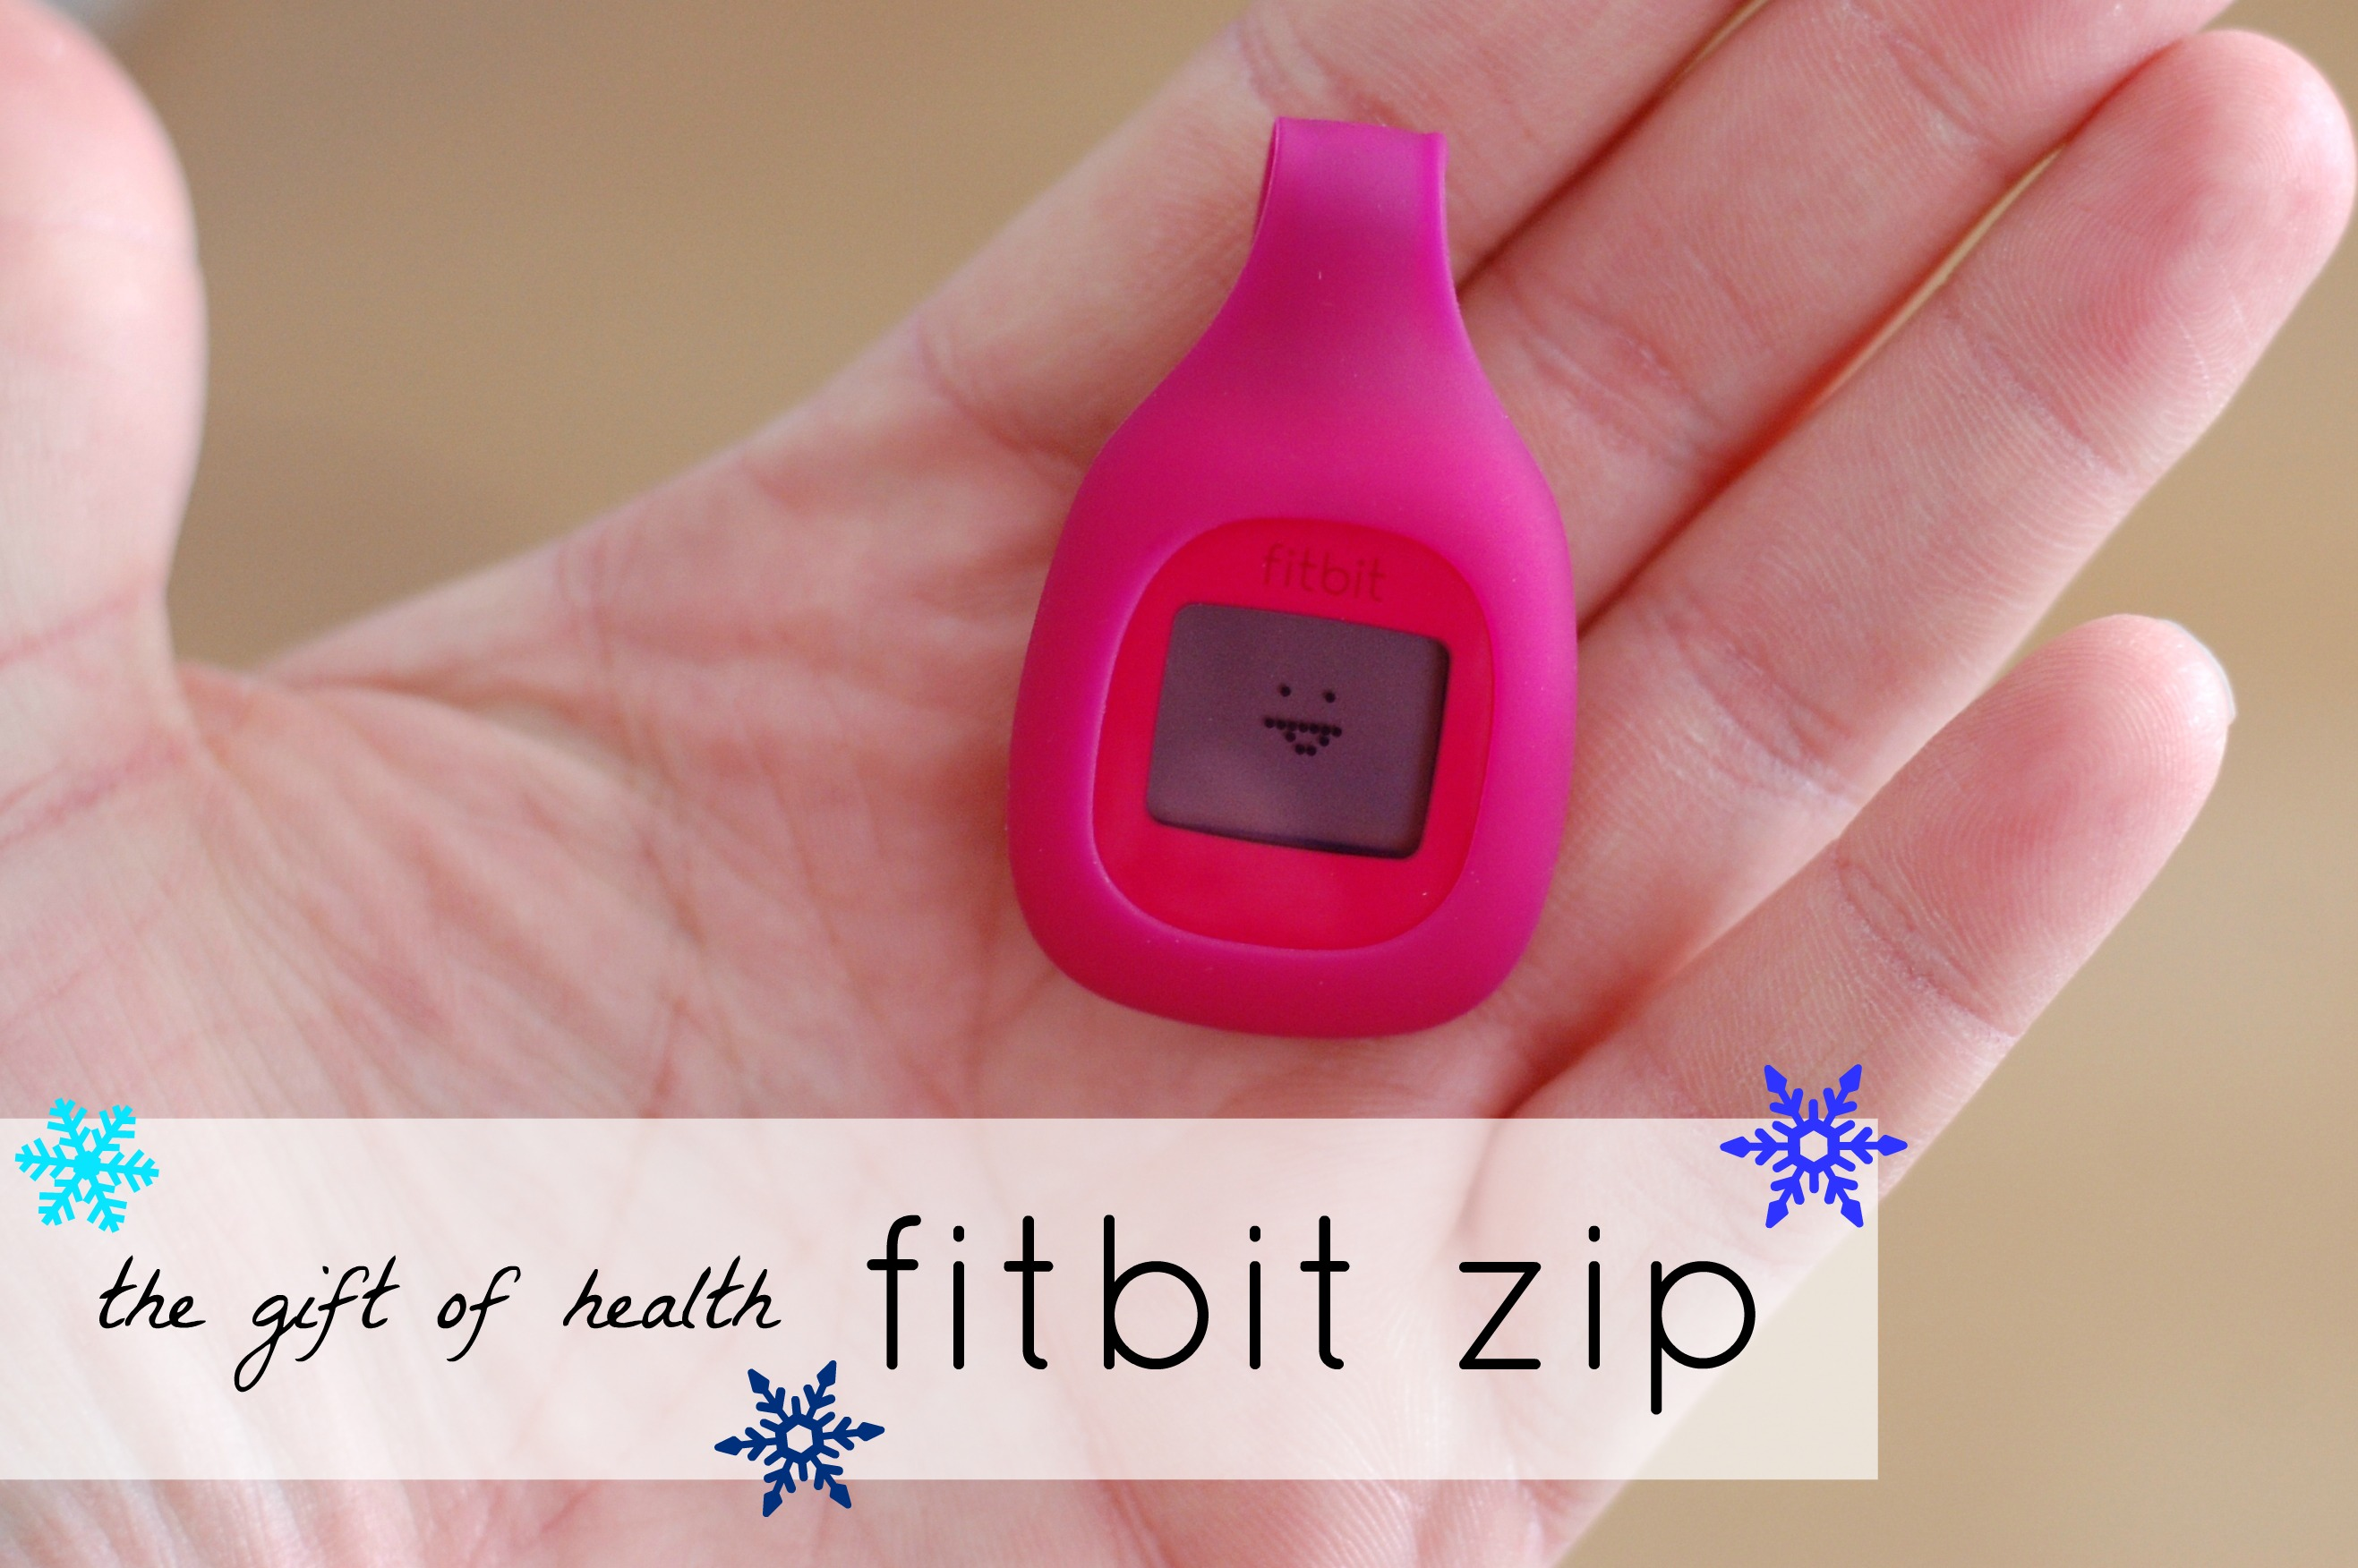 Fitbit Zip Gift of Health